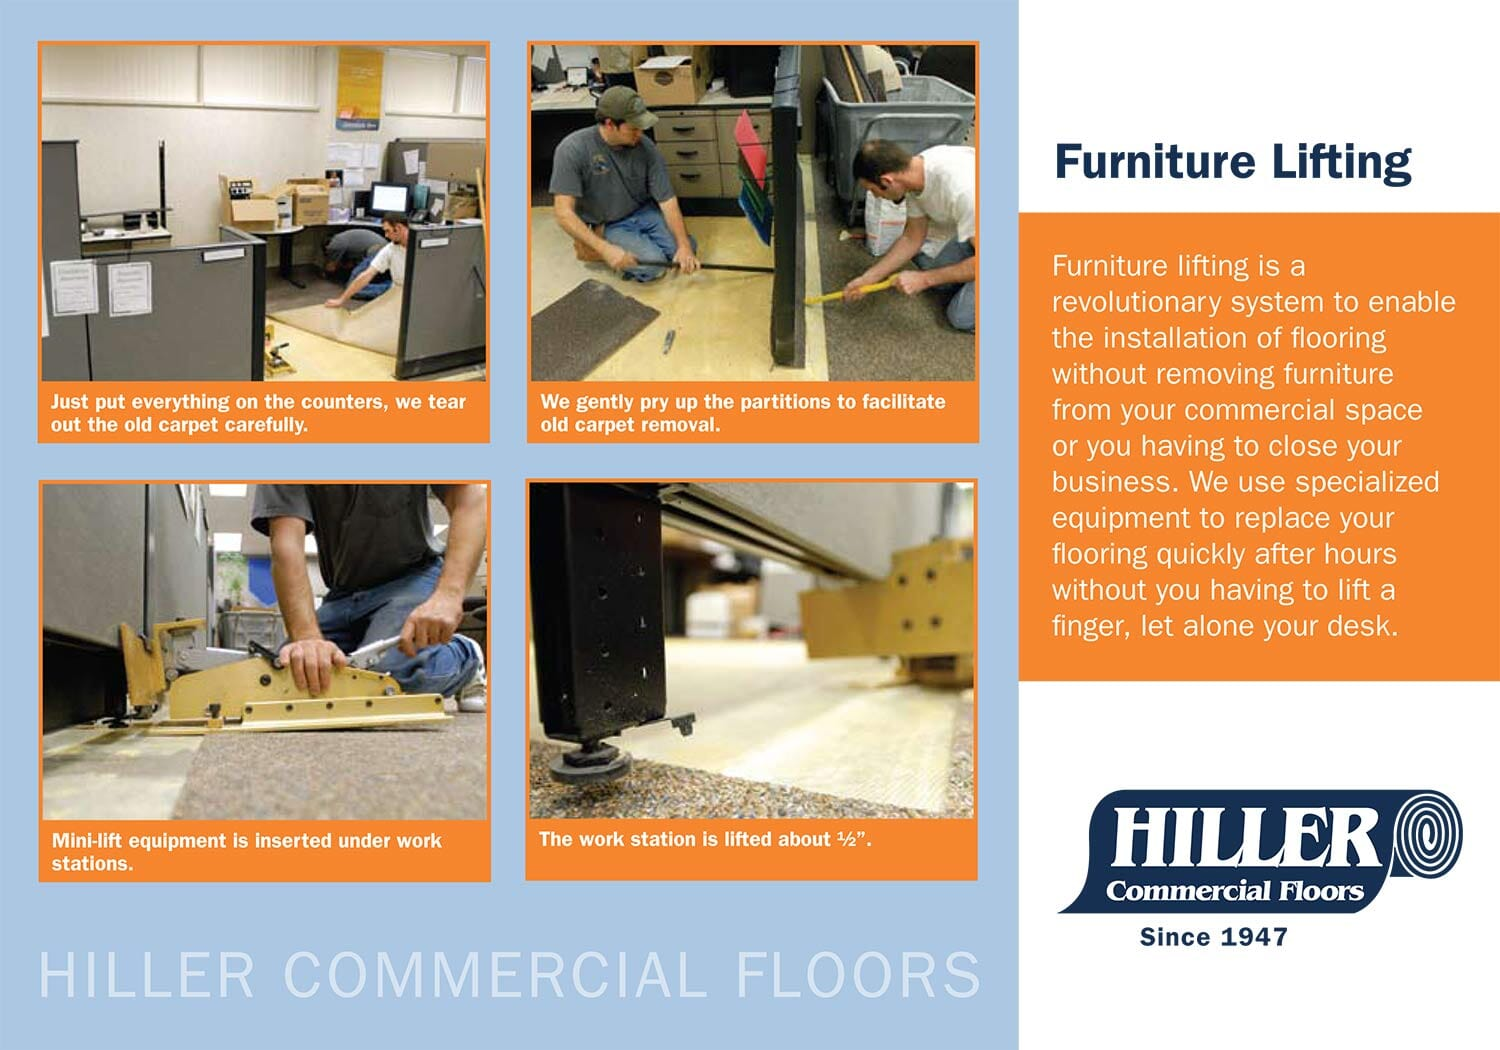 Furniture Lifting from Hiller Commercial Floors